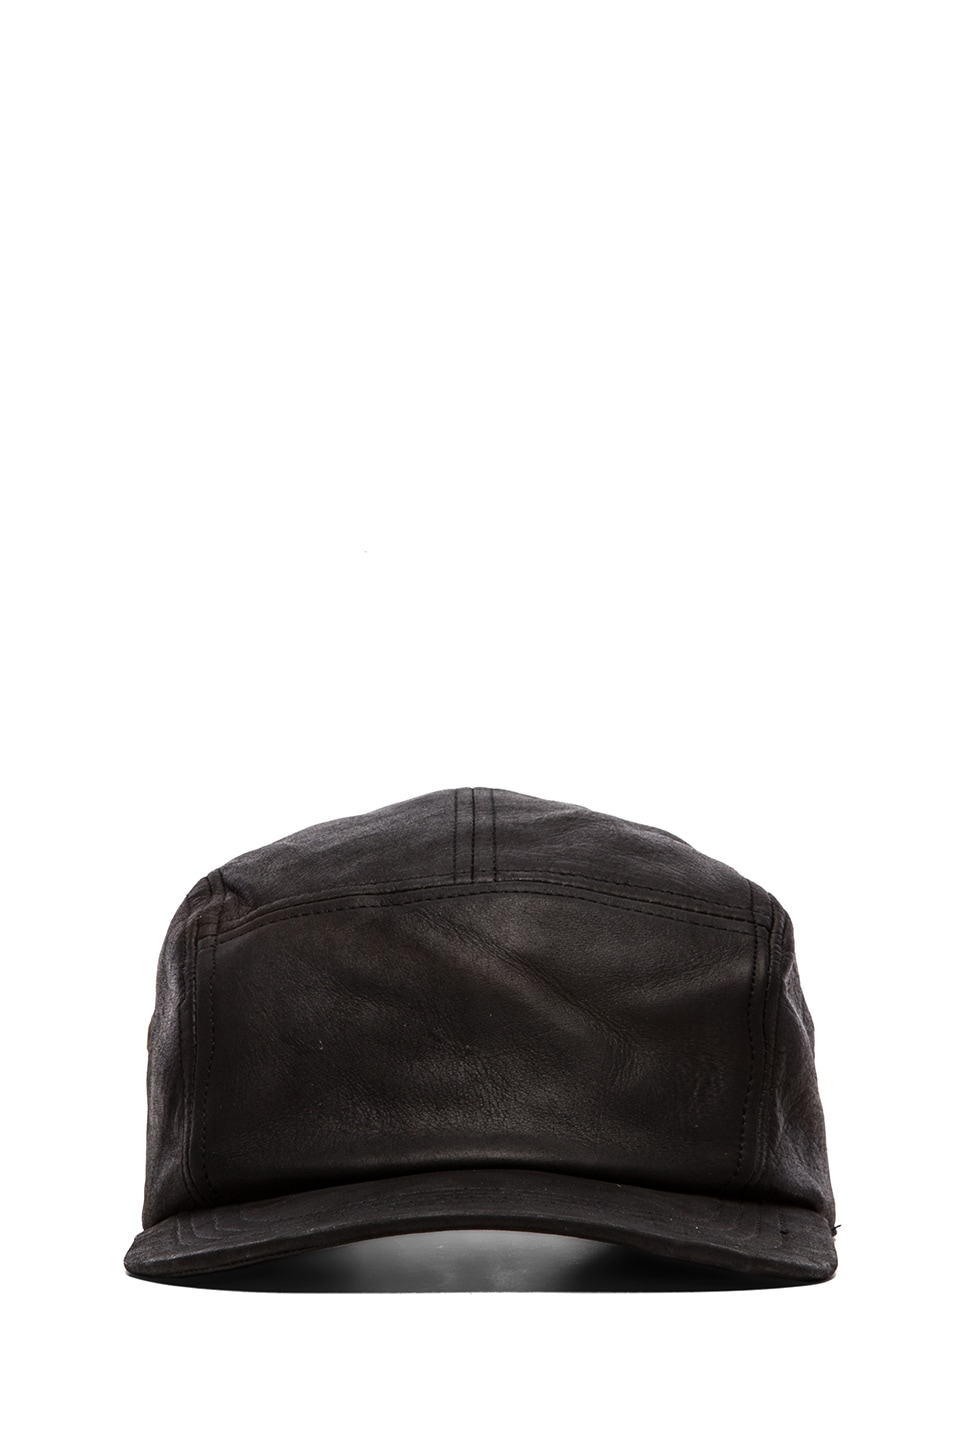 Zanerobe 5-Panel Leather Snapback in Black